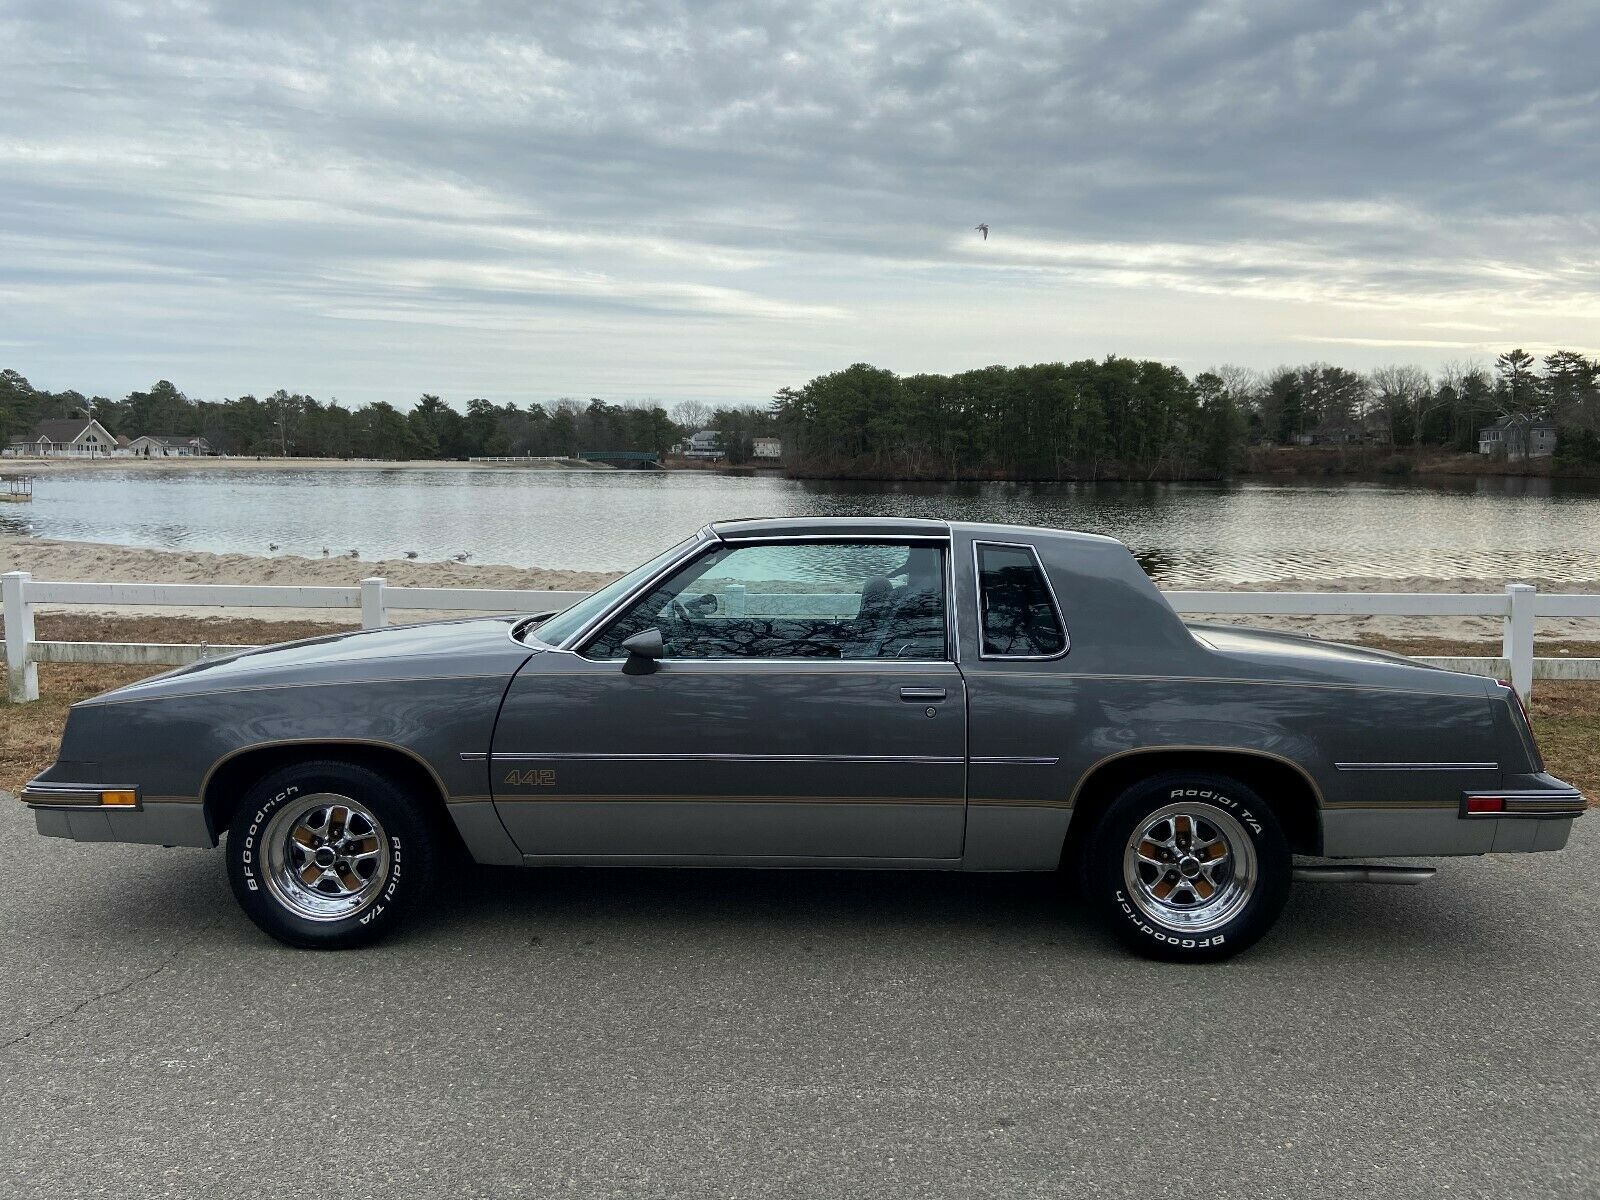 Oldsmobile 442 Cutlass Supreme 1986 For Sale Oldsmobile 442 Oldsmobile Classic Cars Muscle